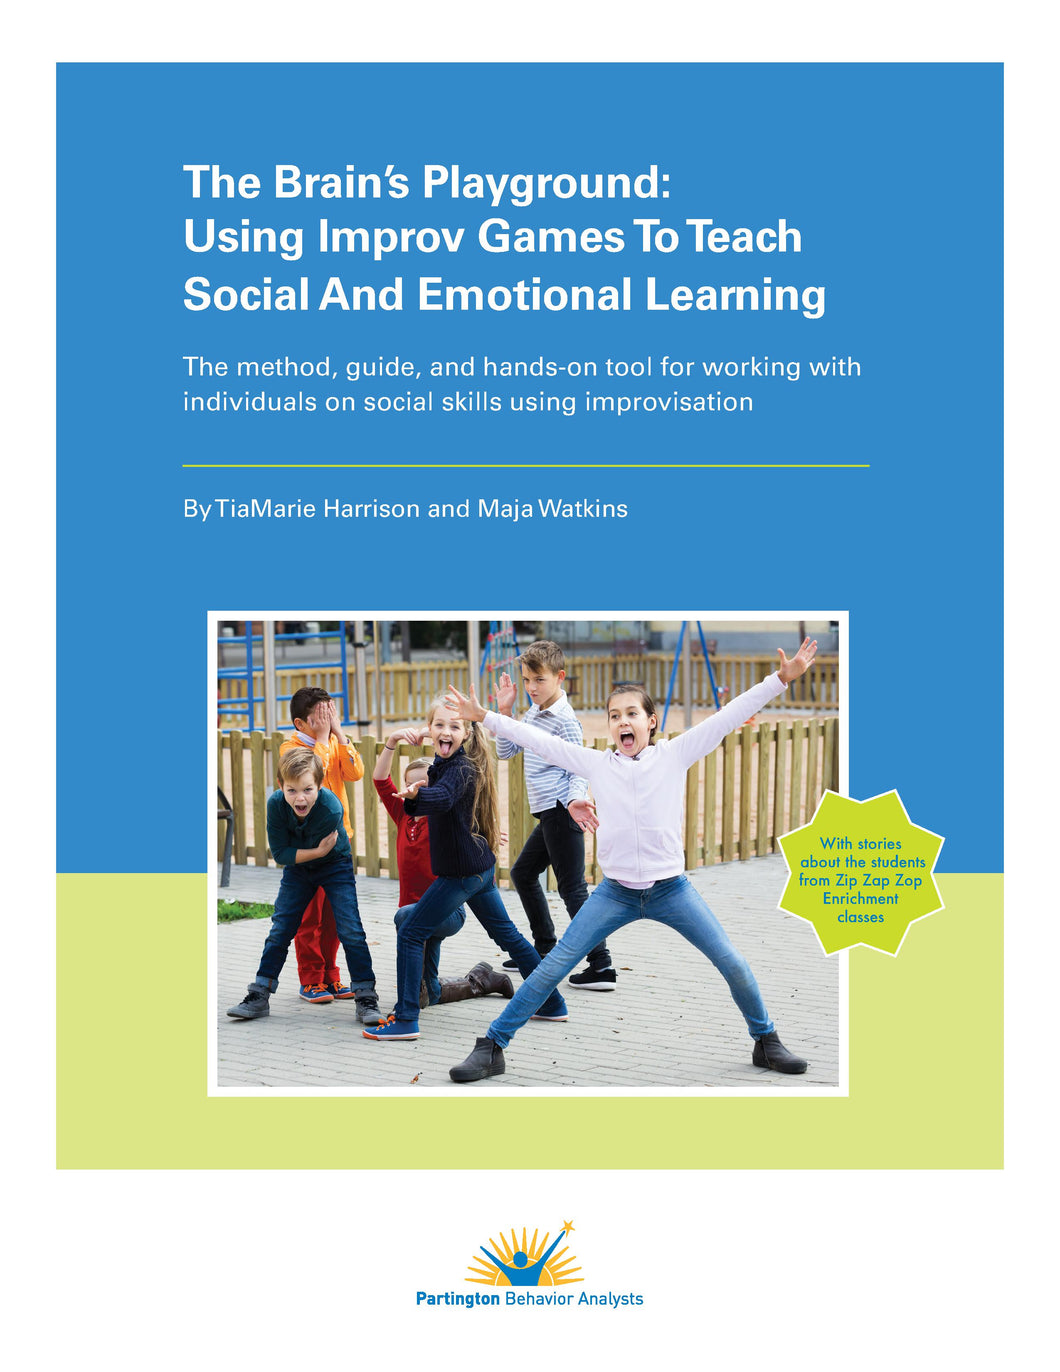 The Brain's Playground: Using Improv Games To Teach Social And Emotional Learning